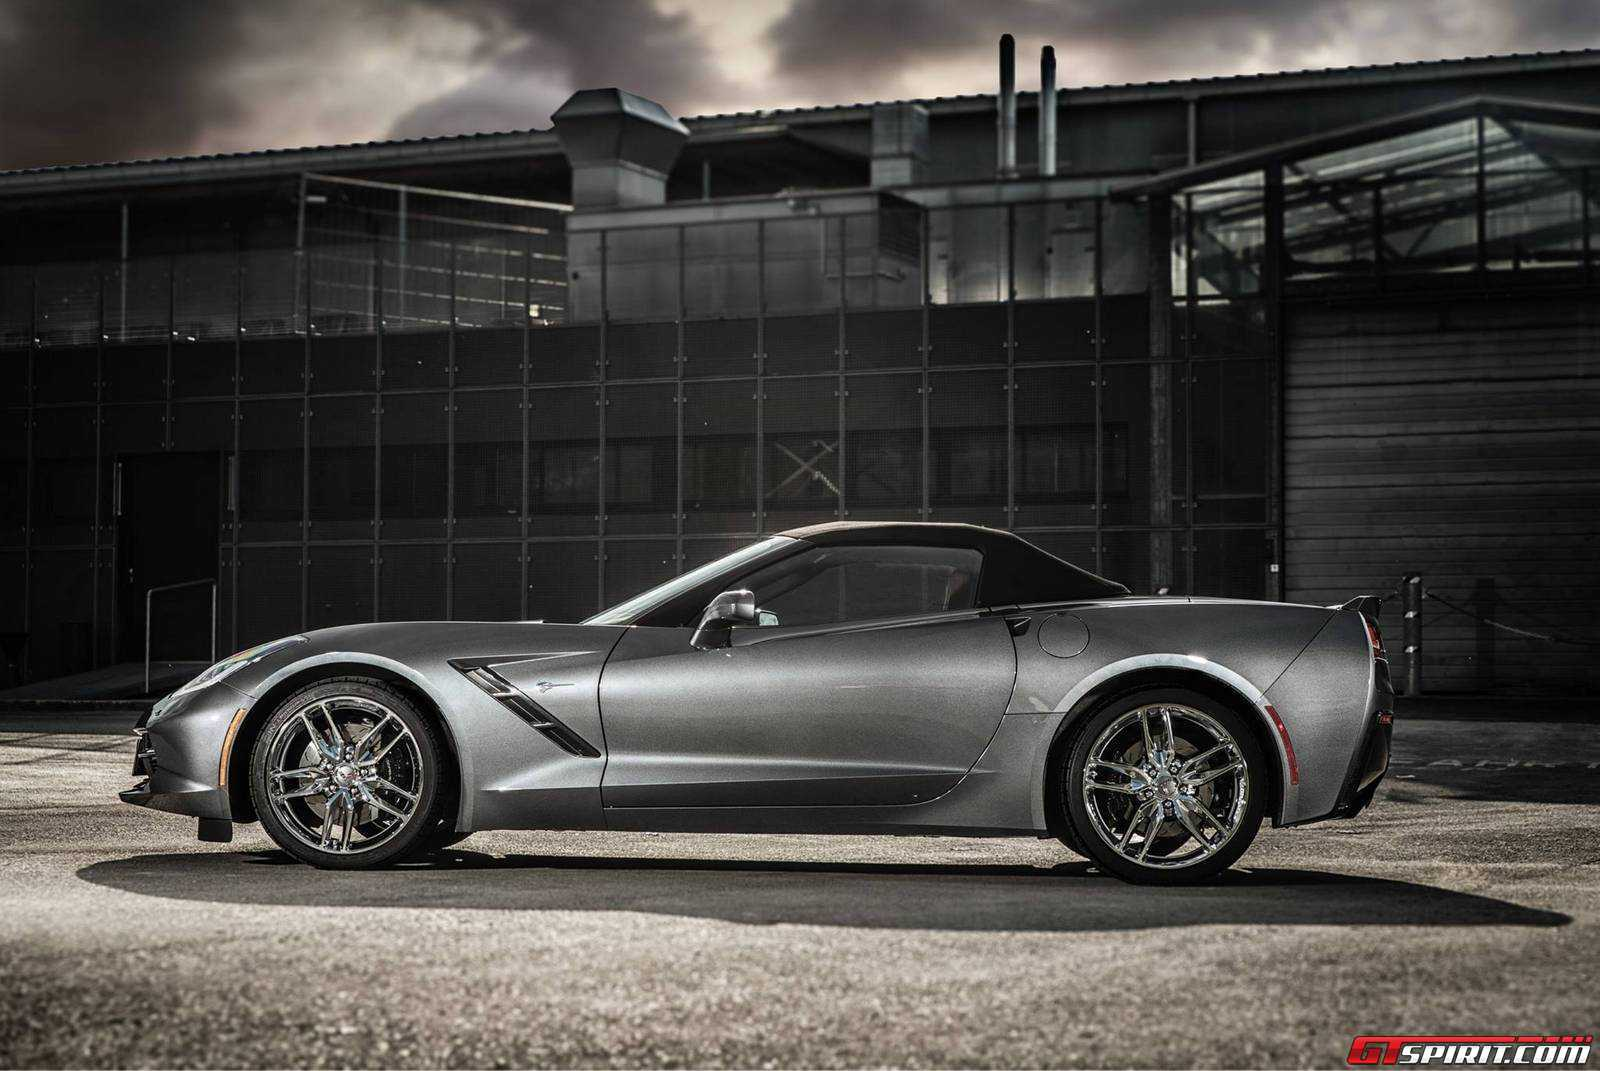 Corvette C7 OCT Tuning